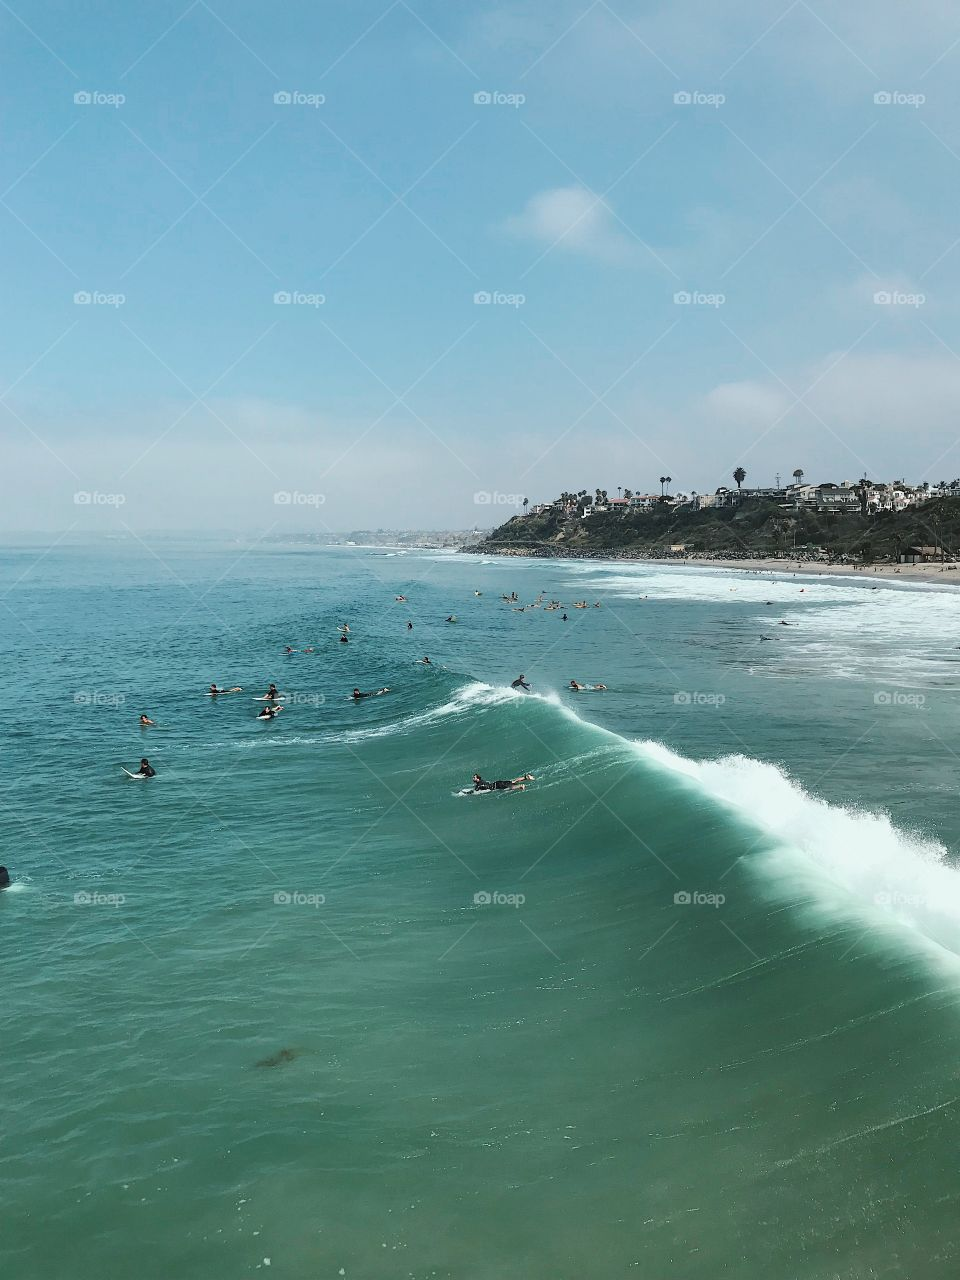 Beautiful afternoon at the beach watching the surfers catch some sweet waves on the west coast.